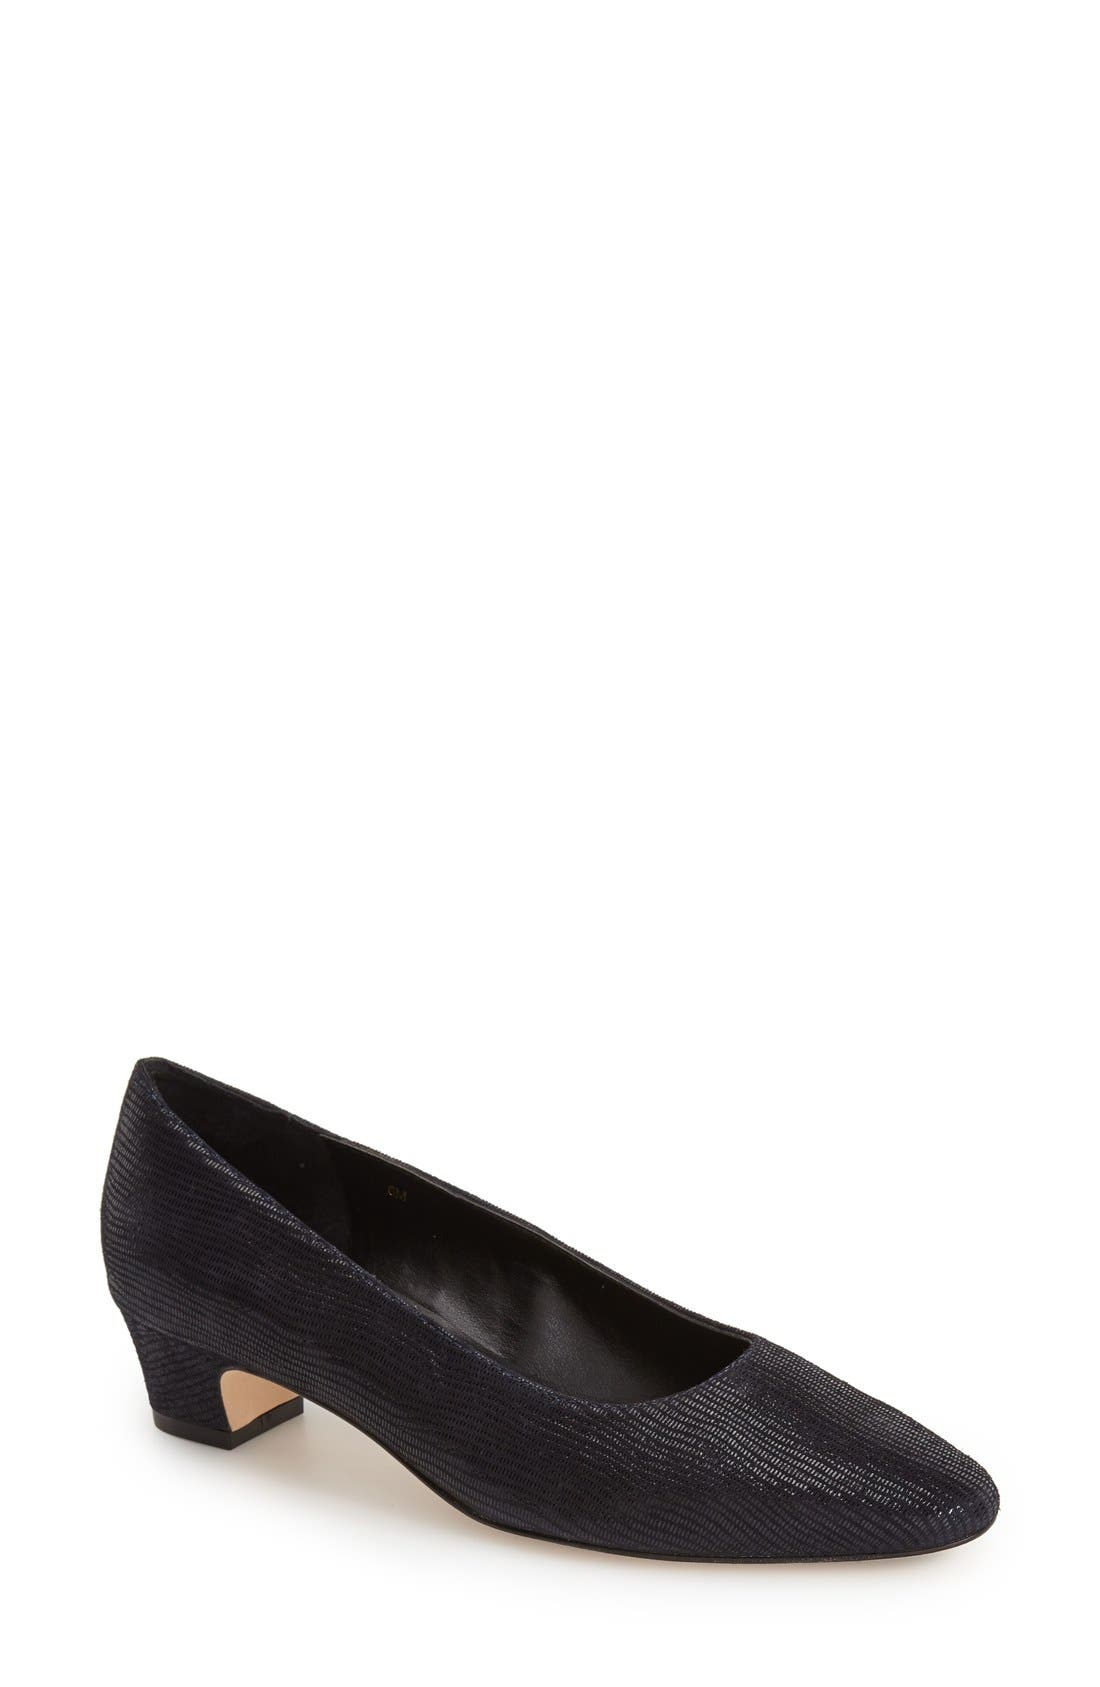 VANELi 'Astyr' Almond Toe Pump (Women)